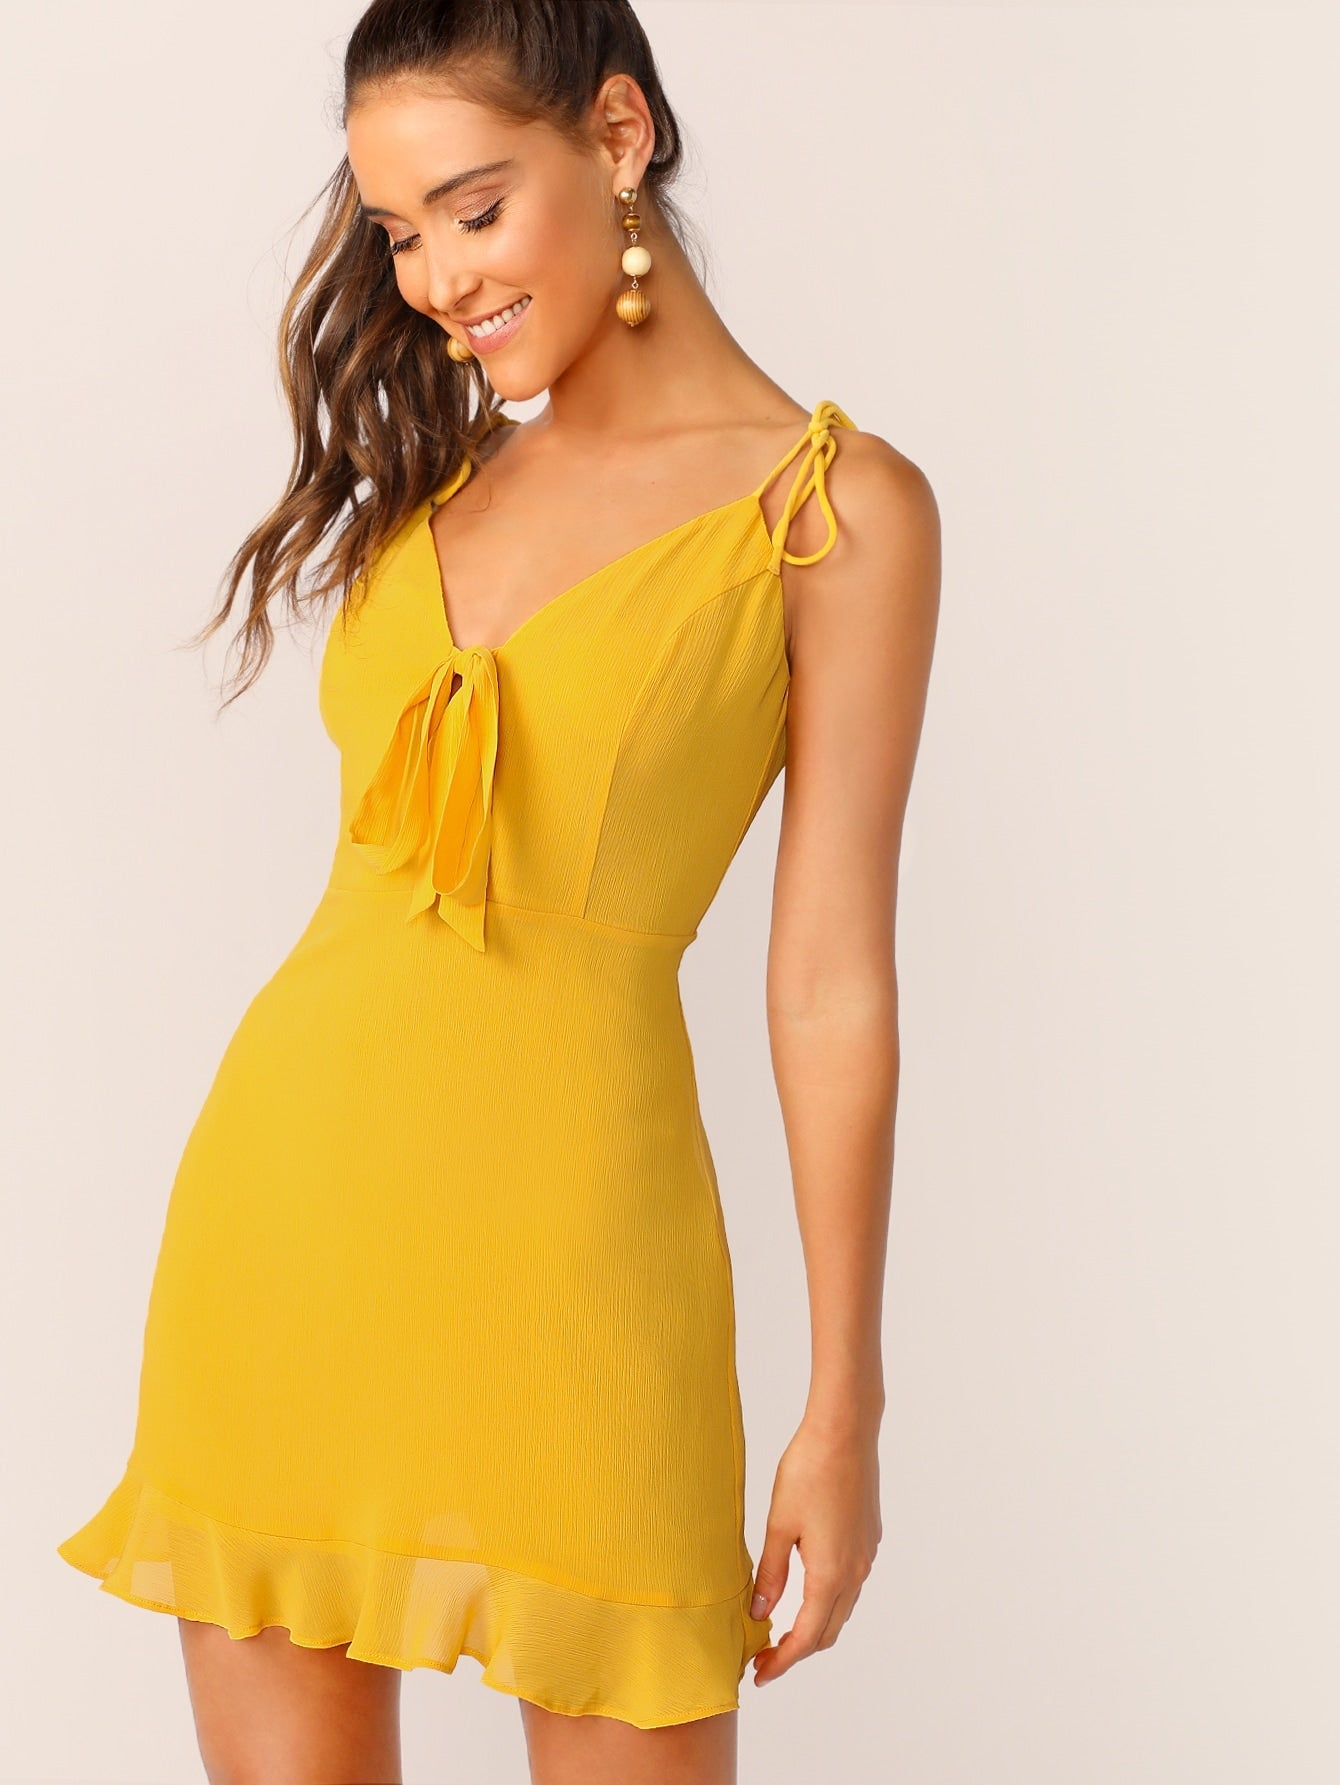 Tie Neck and Shoulder Ruffle Hem Dress - BrandsGuru